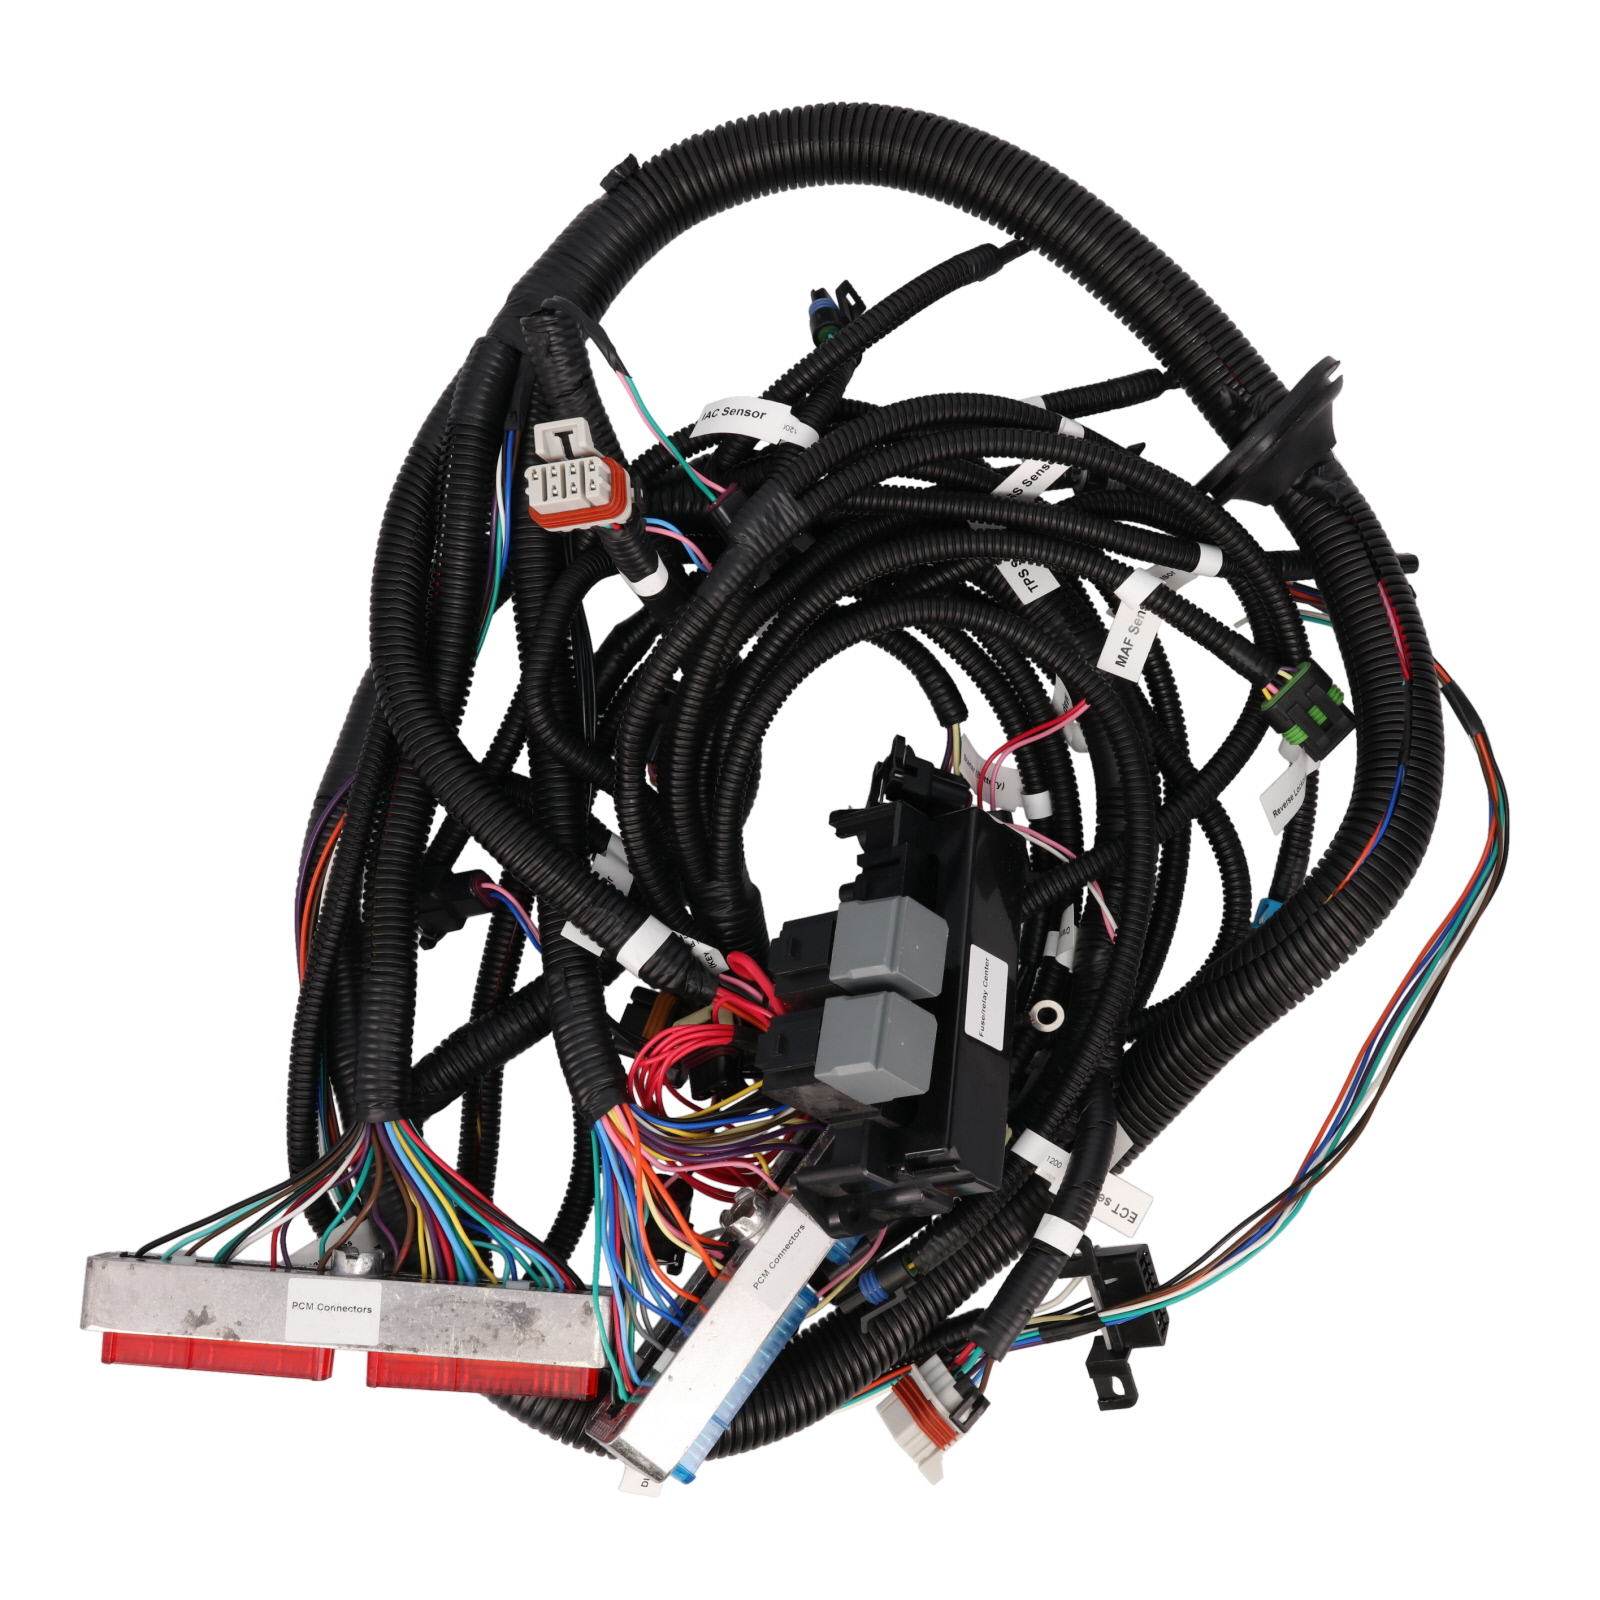 STANDALONE WIRING HARNESS FOR DRIVE-BY-WIRE LS1 WITH T56 MANUAL TRANSMISSION